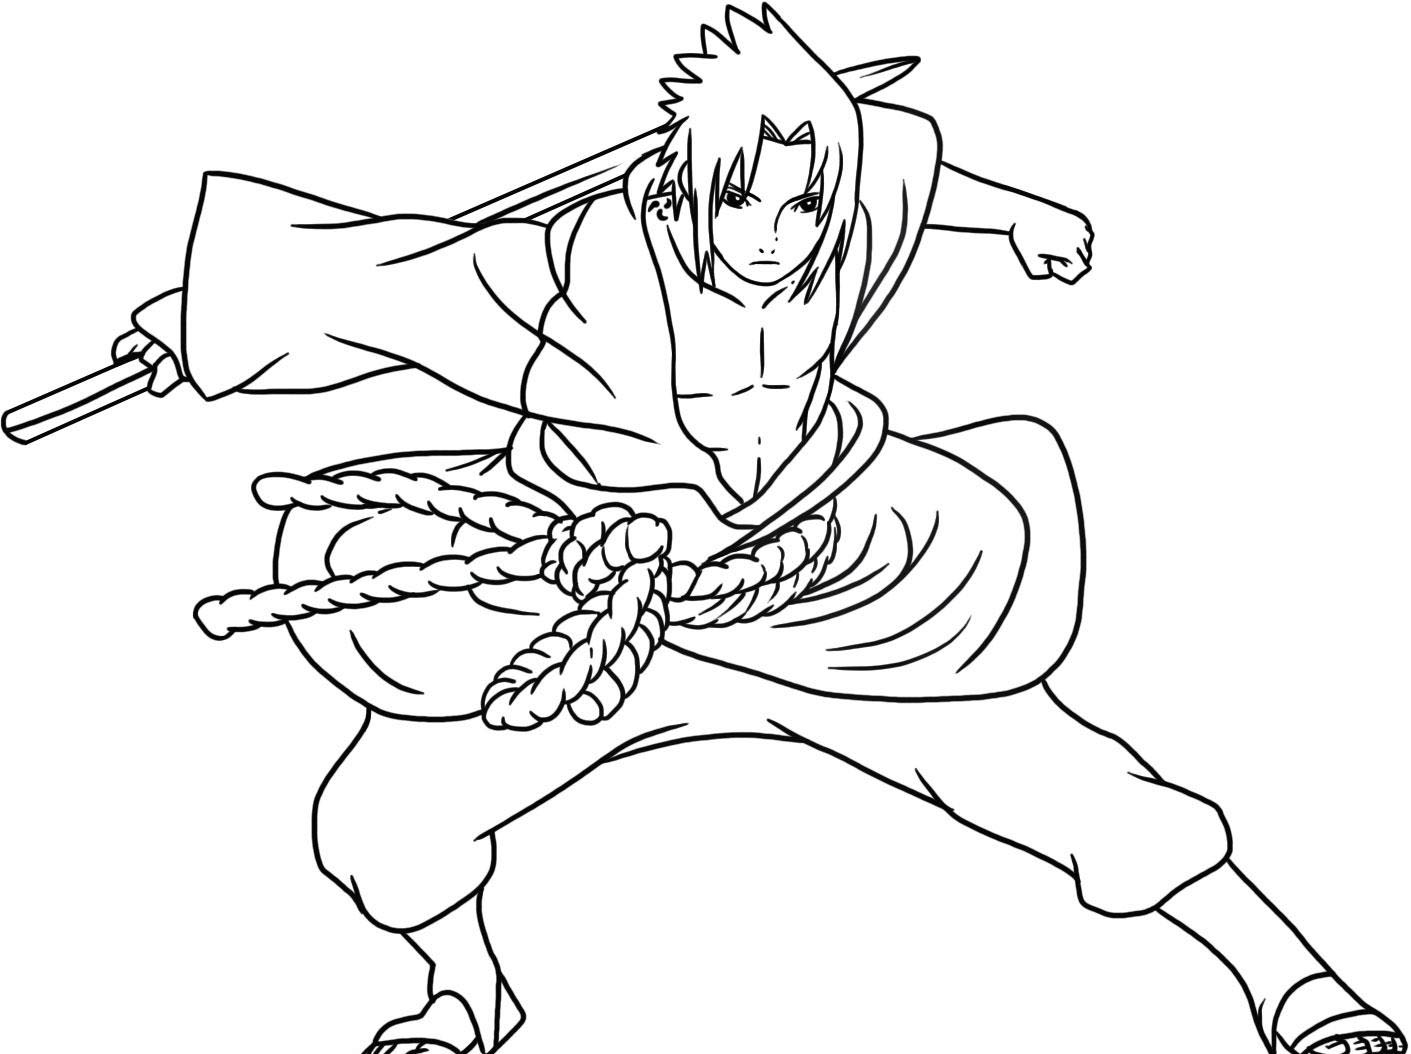 Naruto - Free printable Coloring pages for kids | 1054x1411